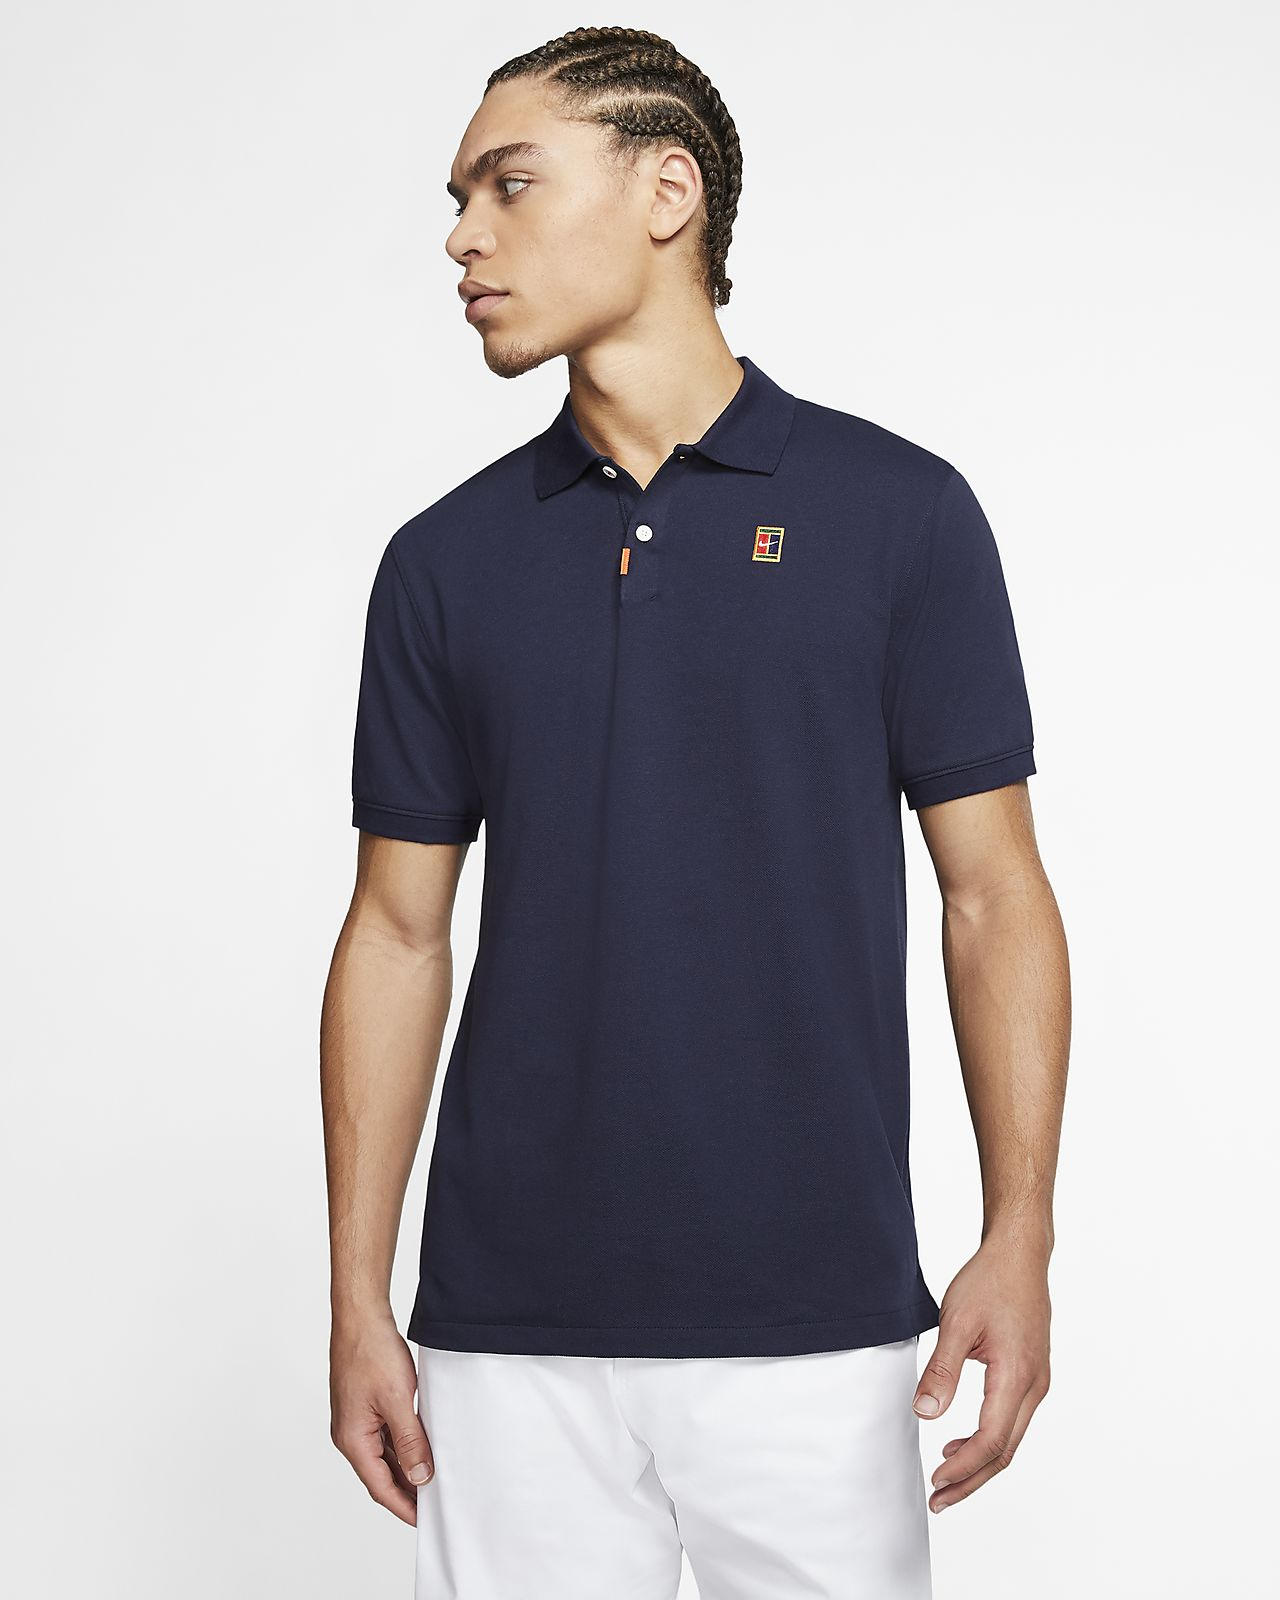 good out x look out for super quality The Nike Polo Men's Slim Fit Polo. Nike DK